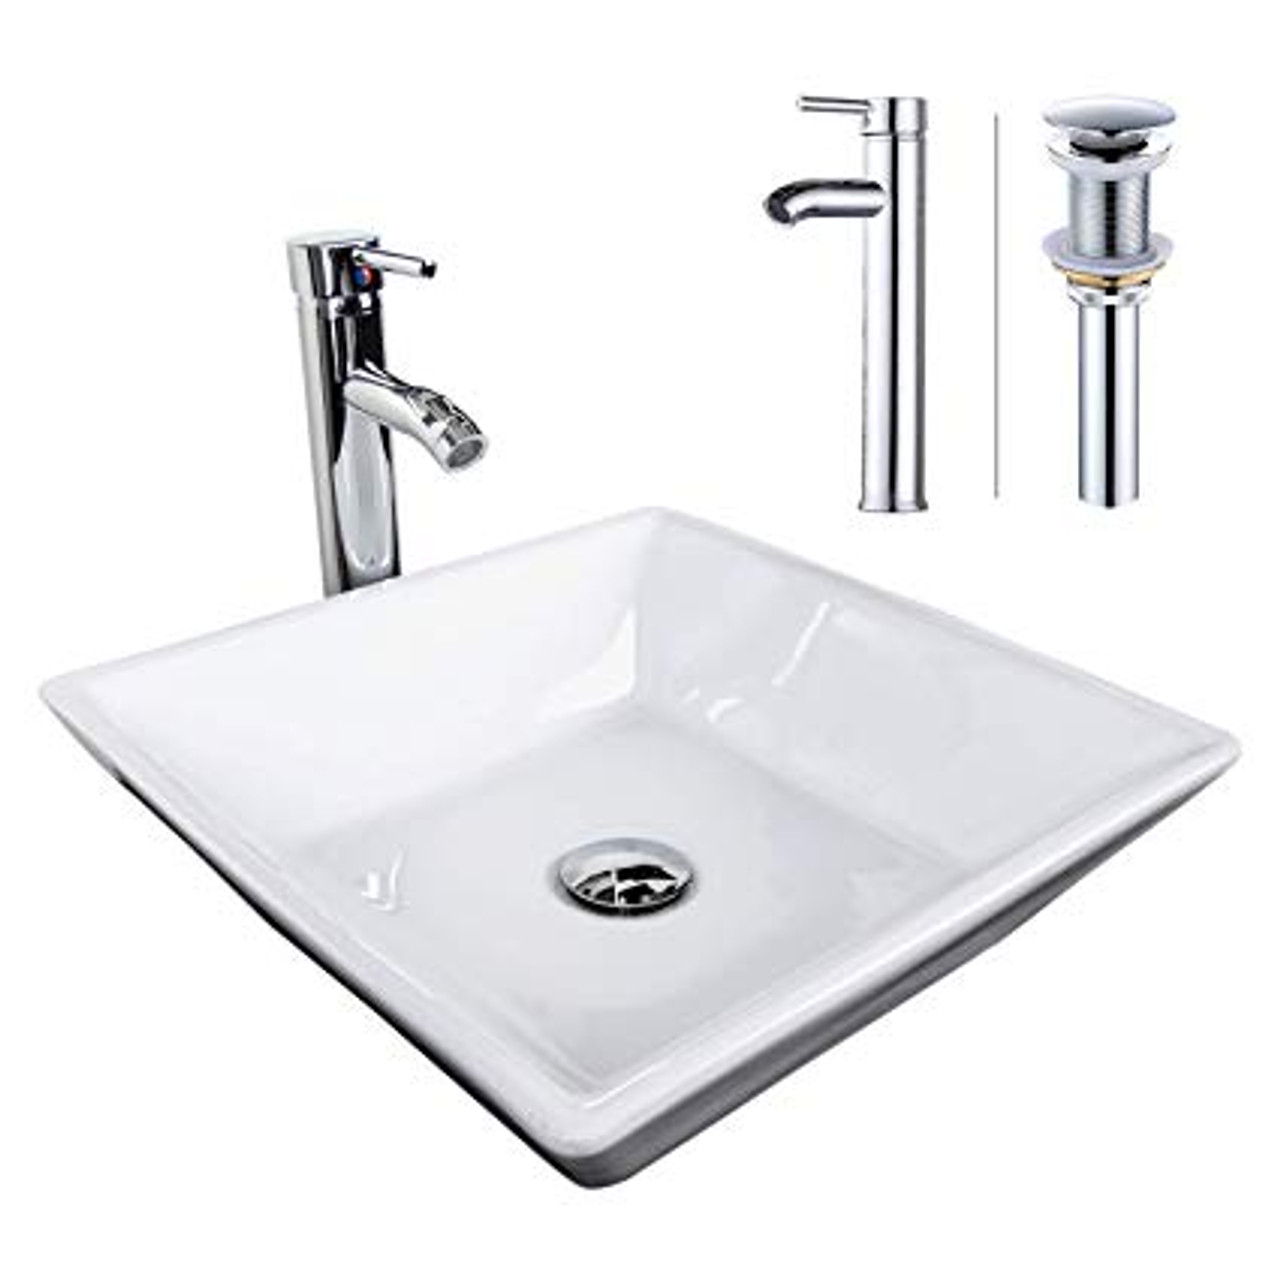 modern square over mount vessel sink chrome faucet combo with pop up